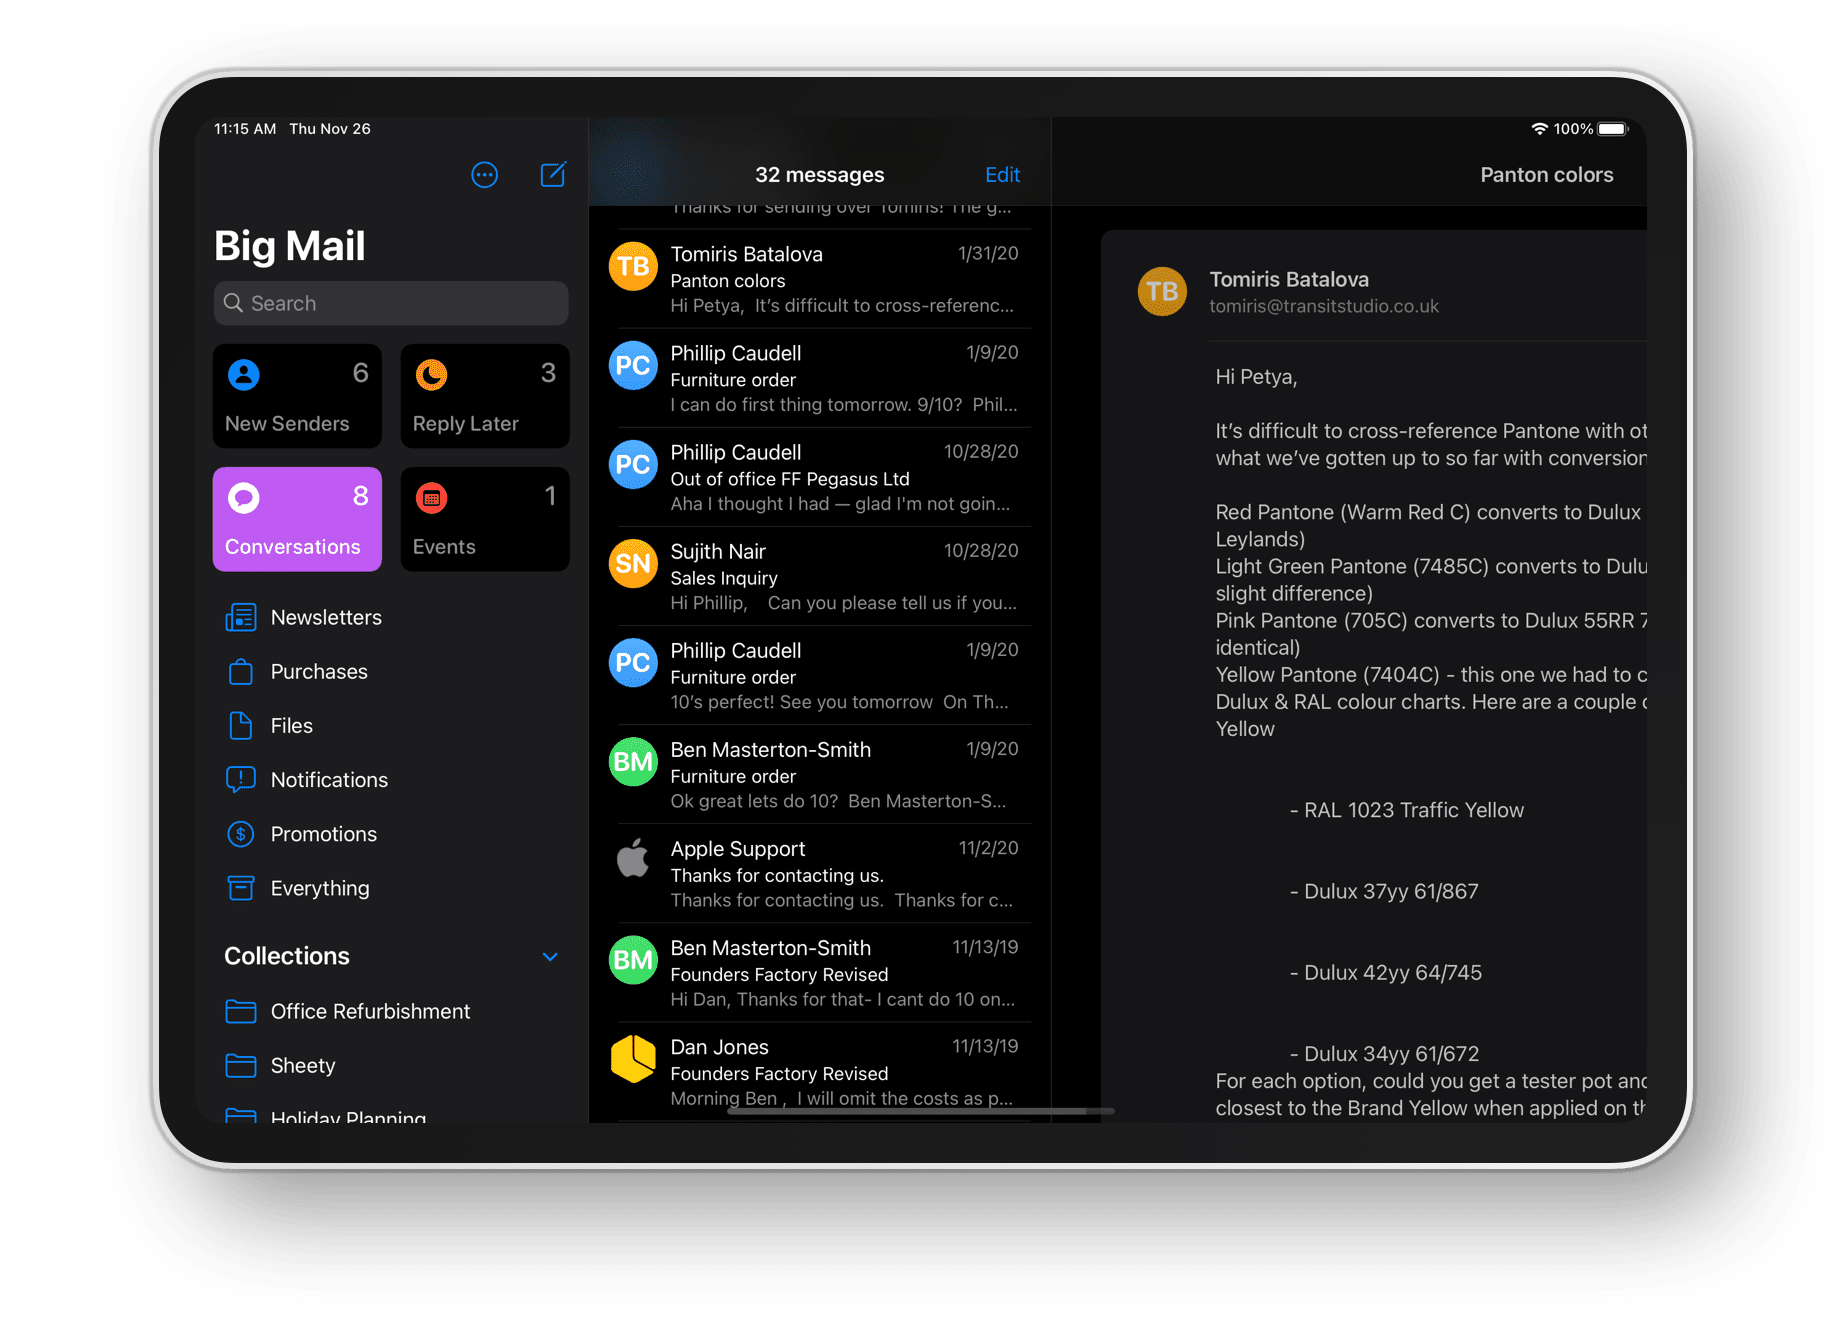 Big Mail's conversations section on iPad showing various email conversations